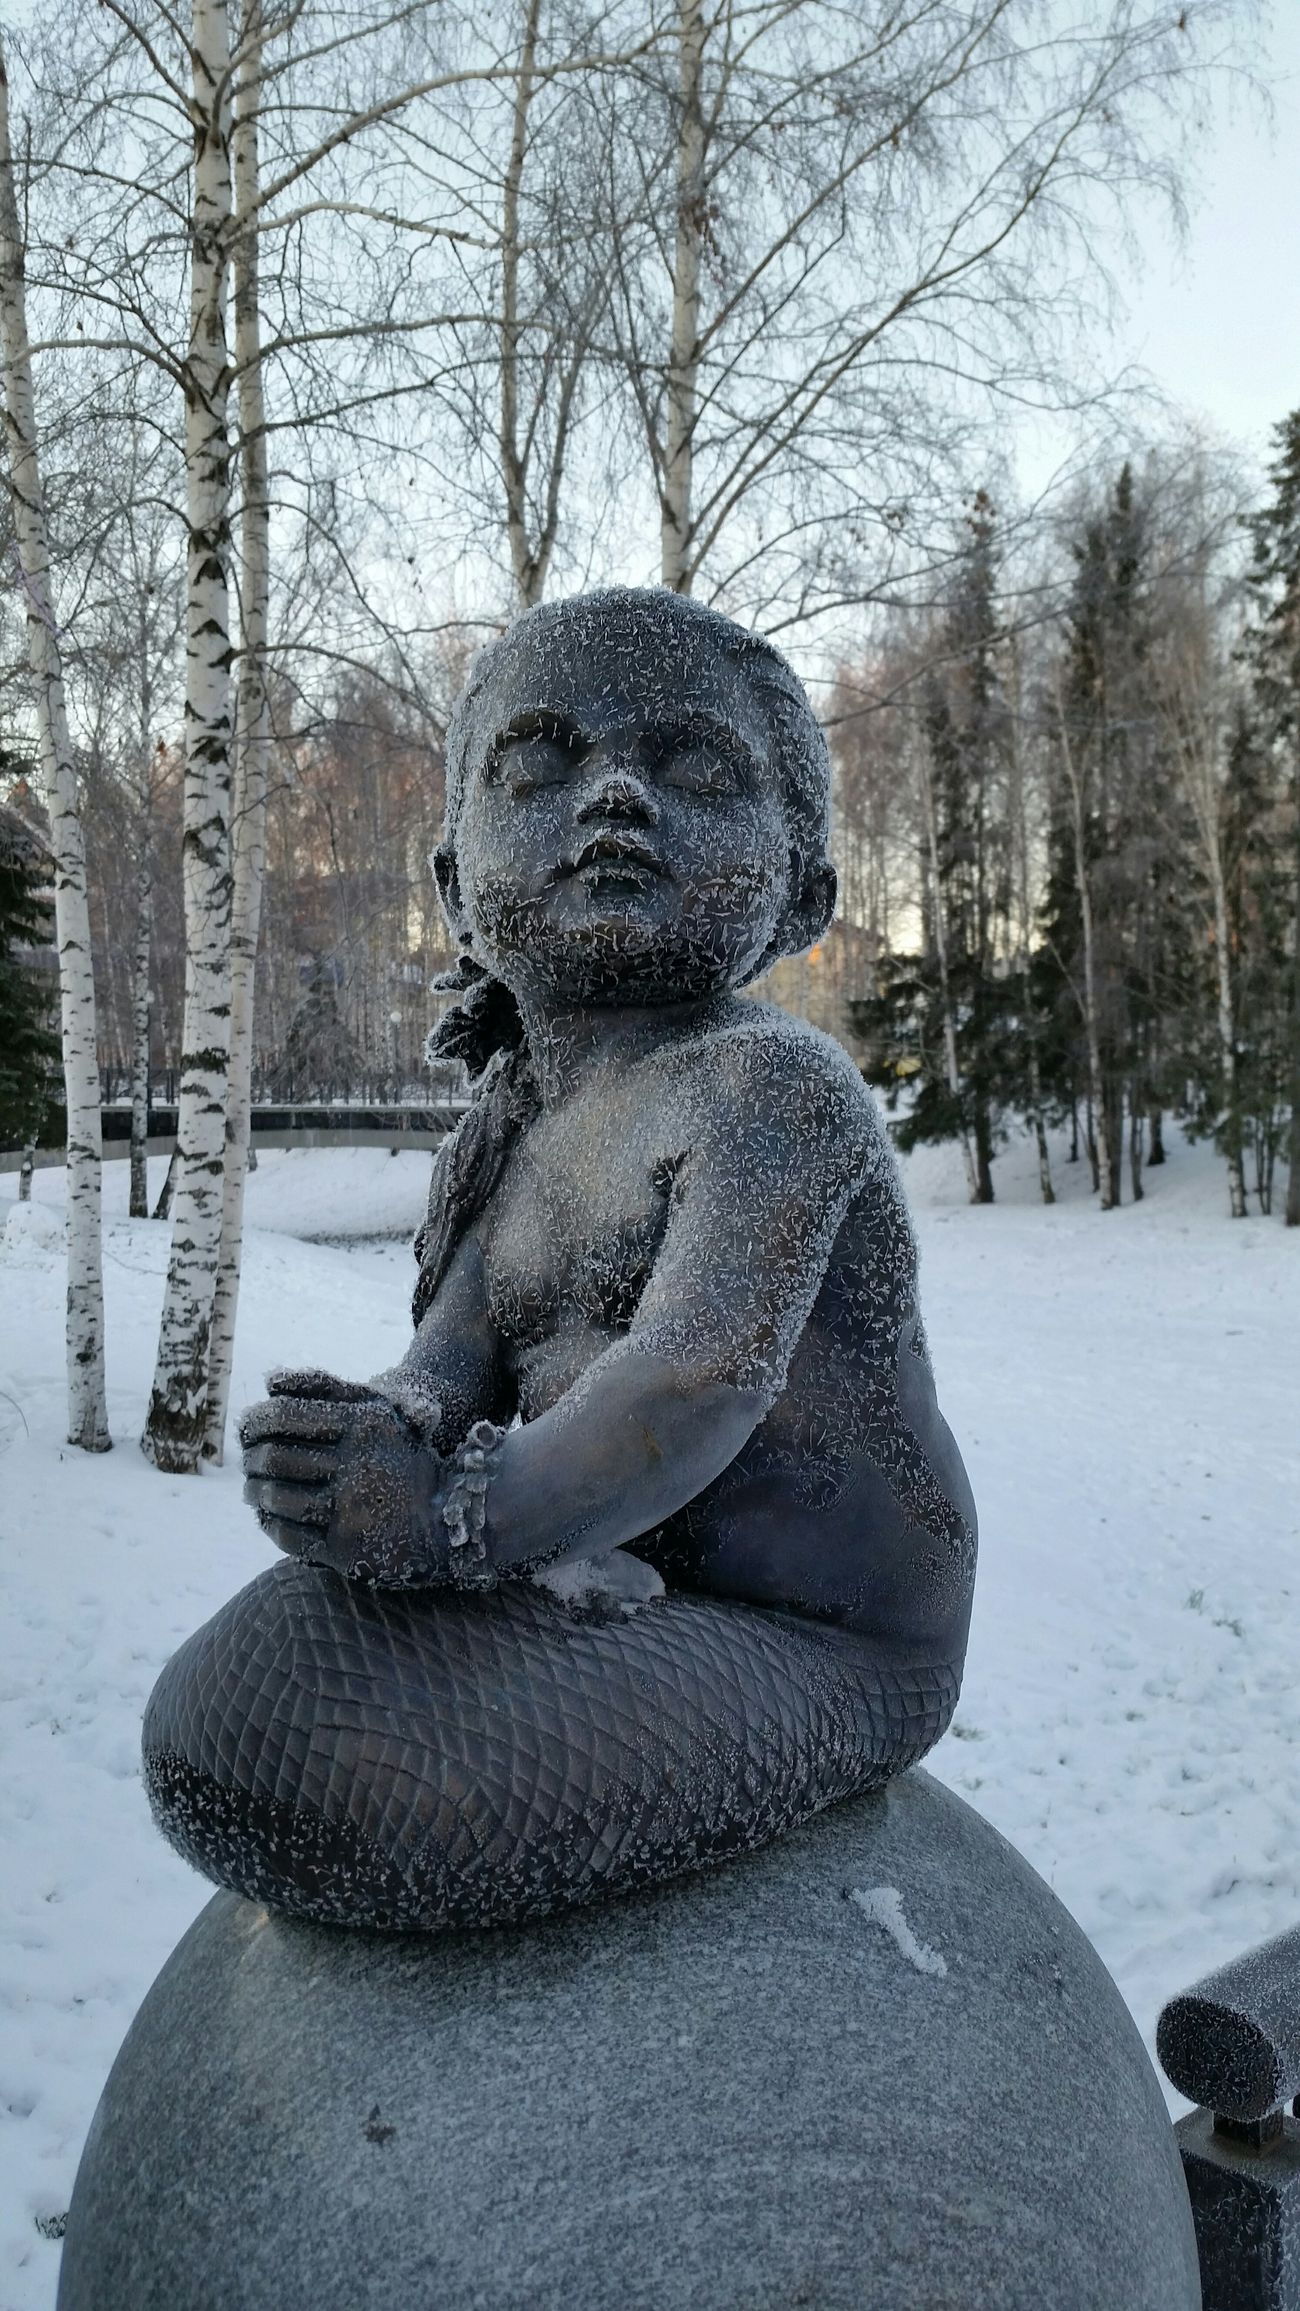 Русалка замерзла скульптура Mermaid Frozen Sculpture Morning